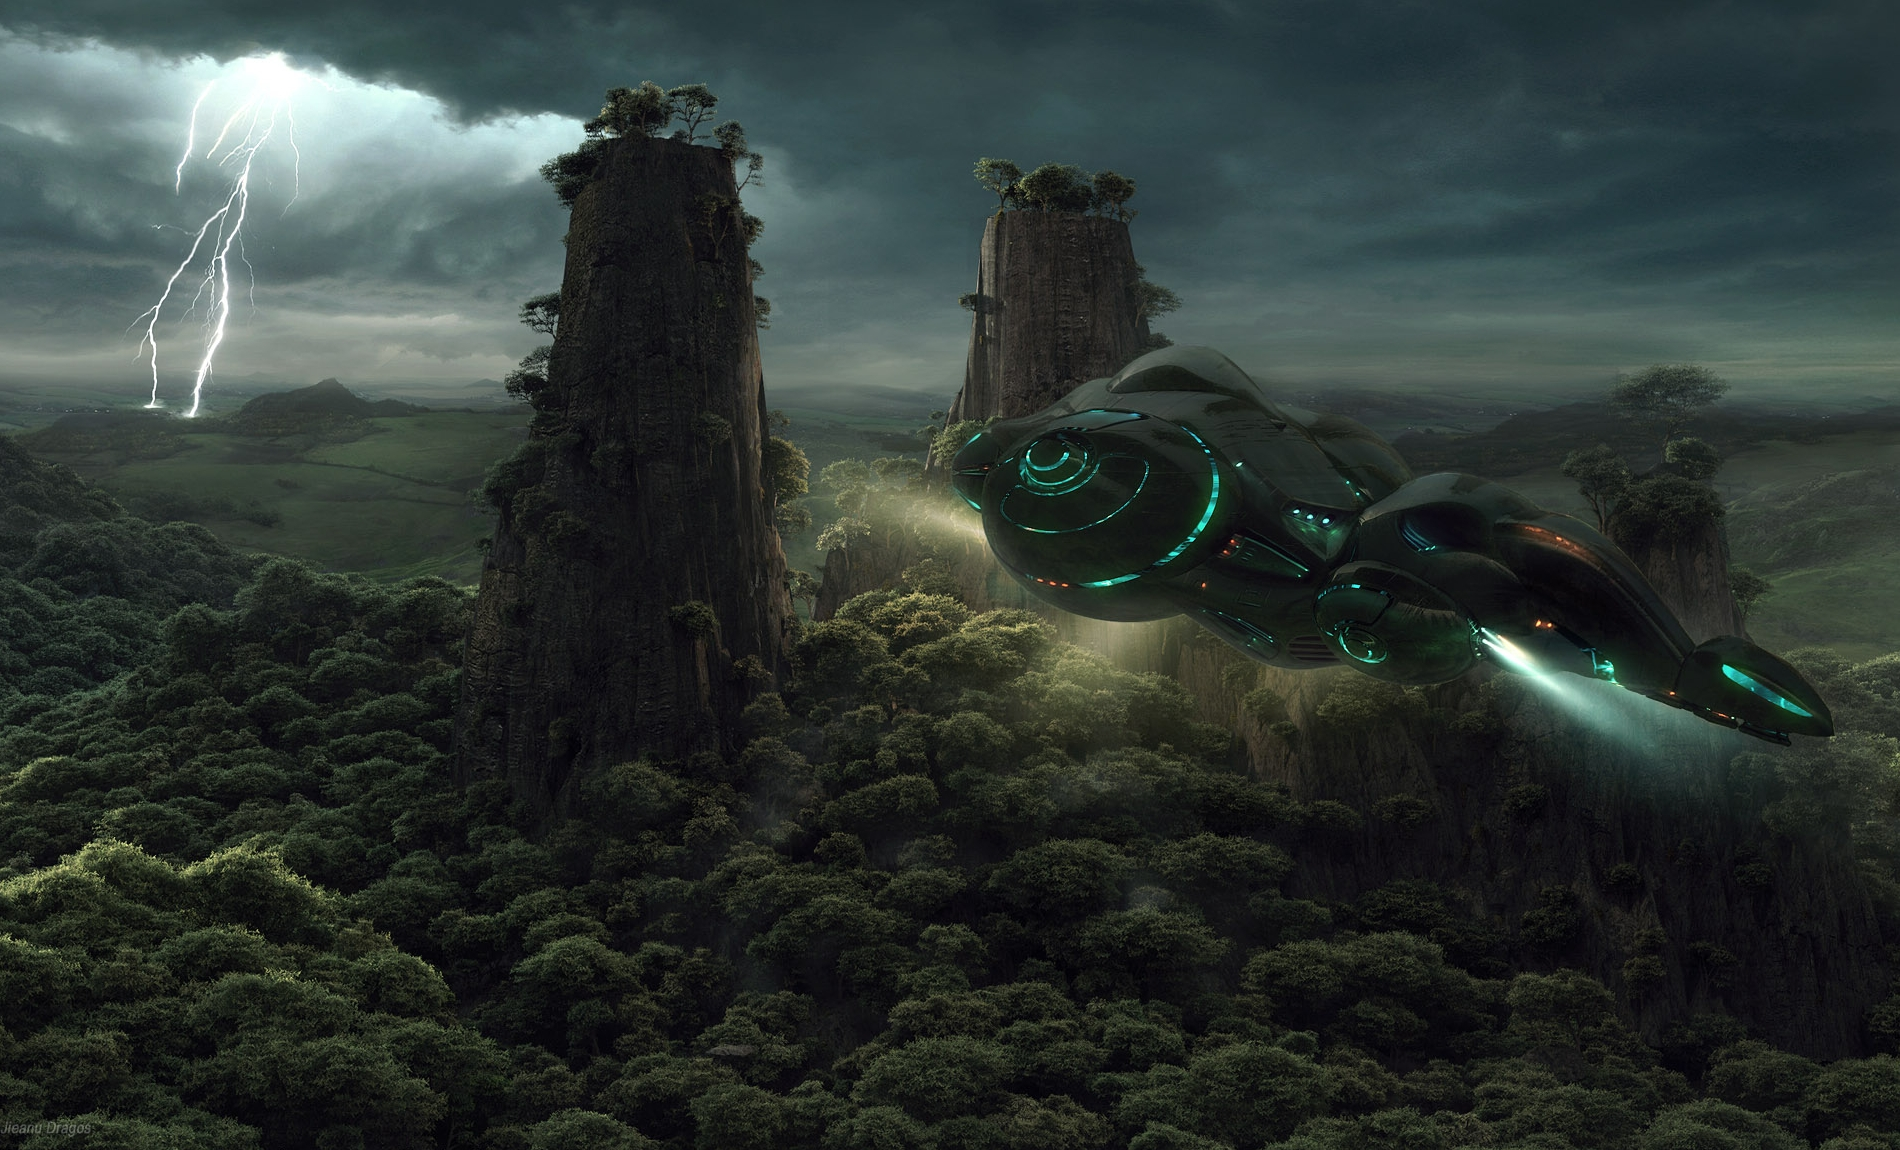 World Wallpaper Sci Fi Wallpaper: 1068 Spaceship HD Wallpapers